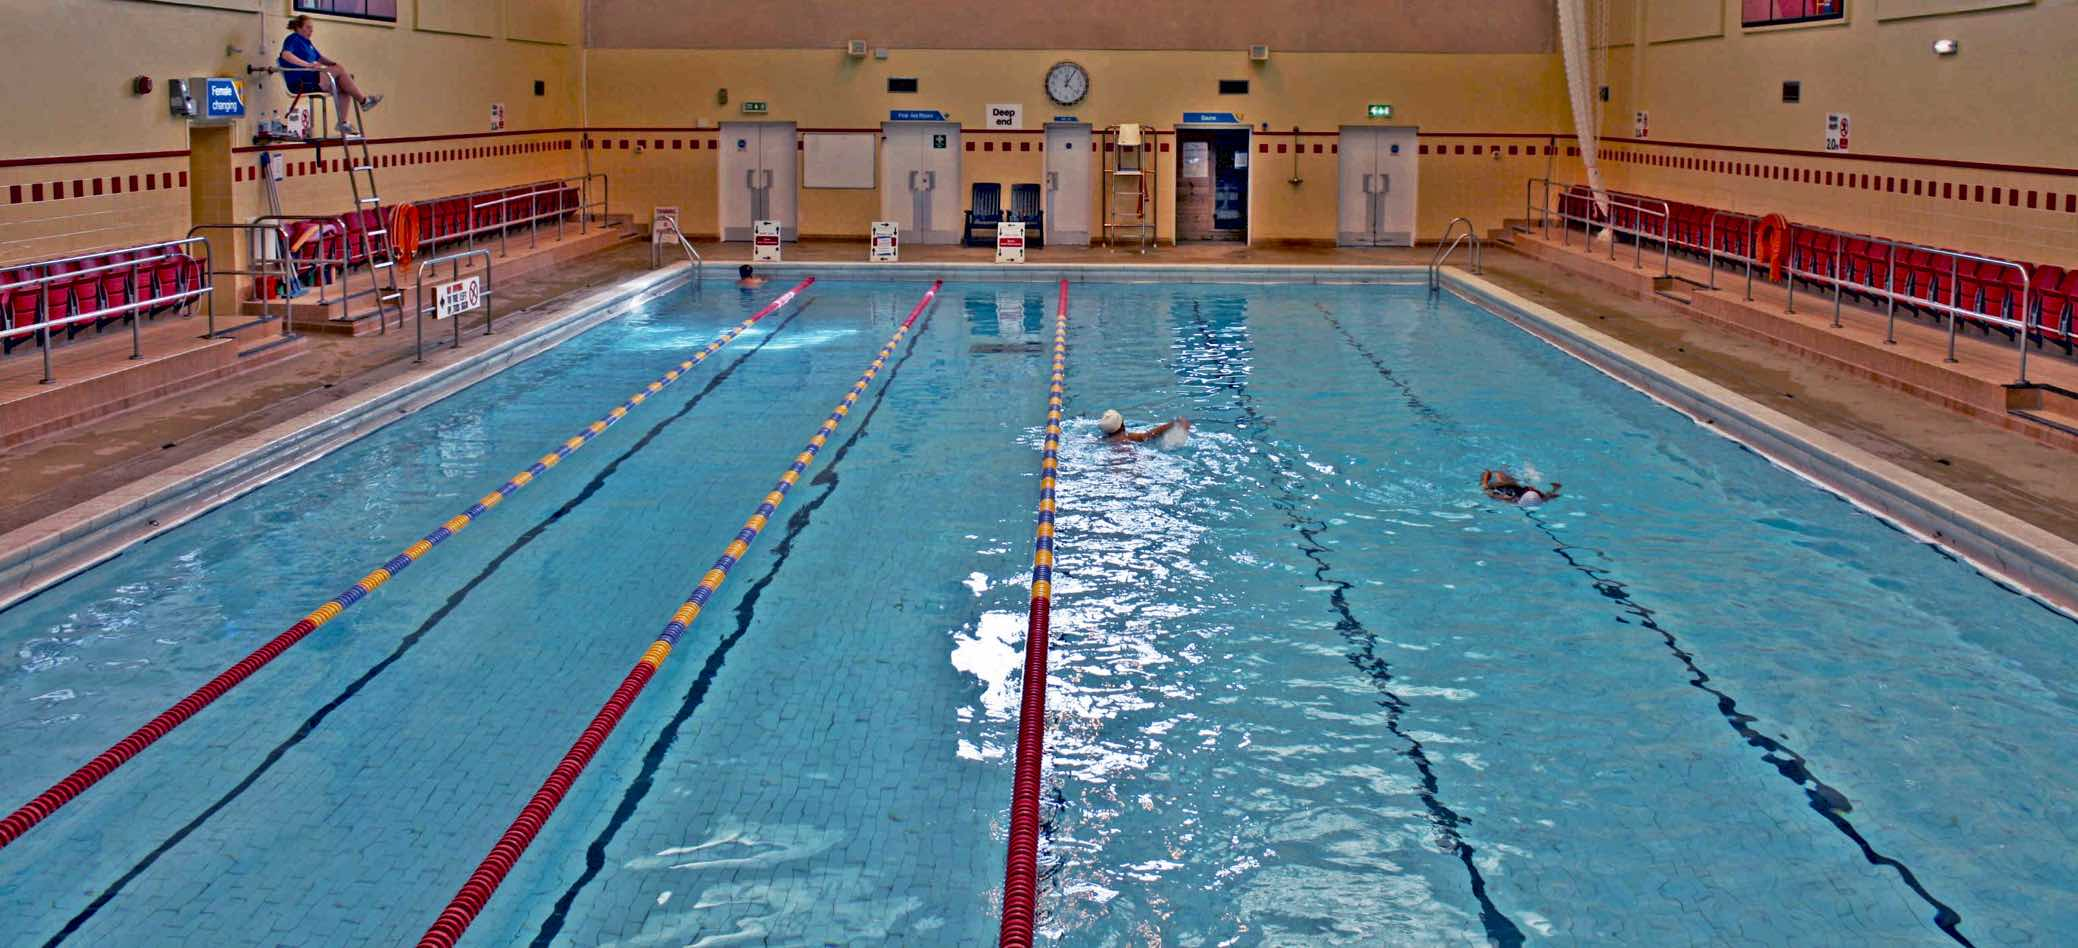 Stokewood bh live active for Pyramid swimming pool portsmouth